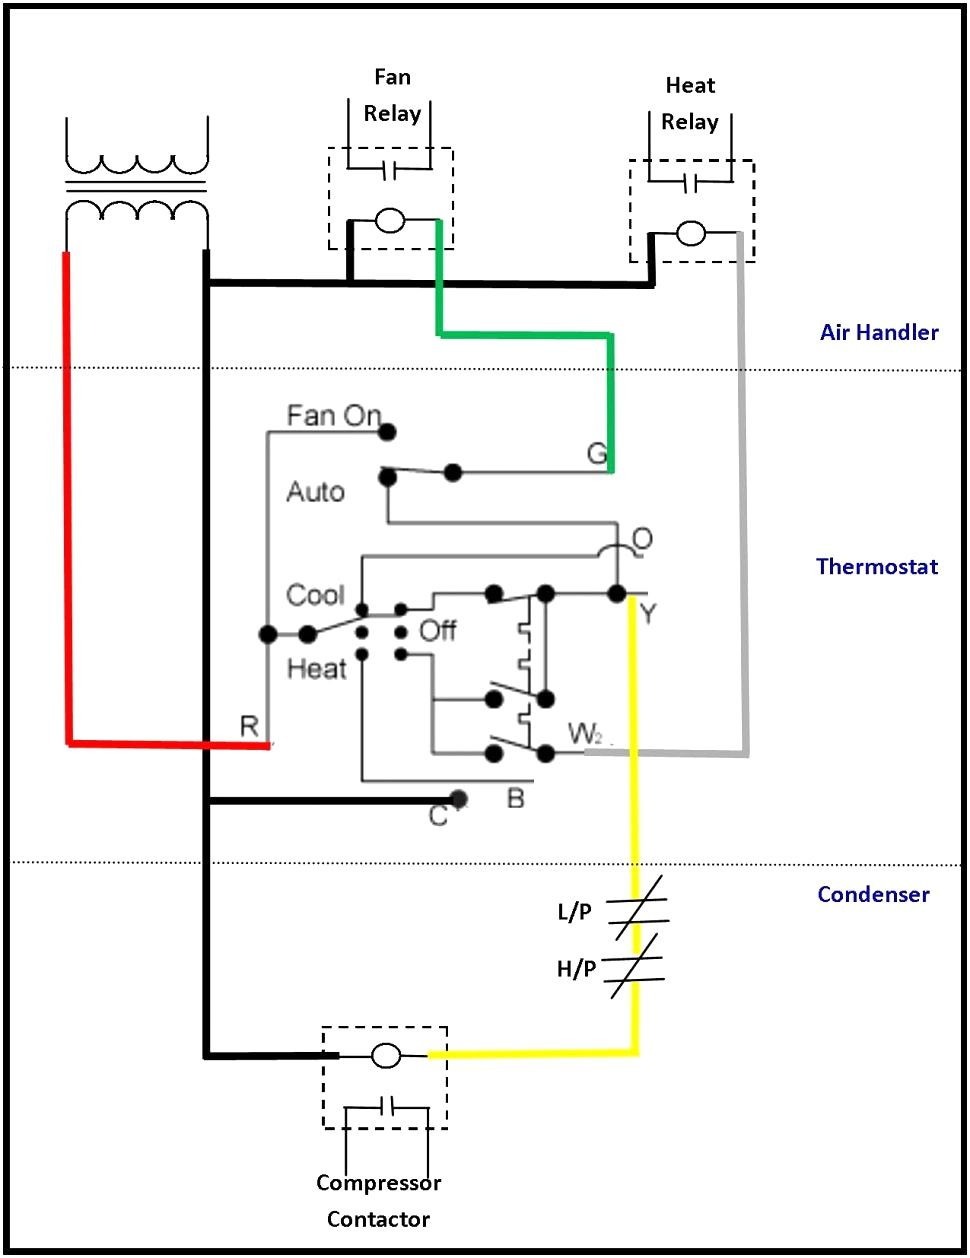 5 pin bosch relay wiring diagram - fitfathers.me | electrical circuit  diagram, thermostat wiring, electrical wiring diagram  pinterest